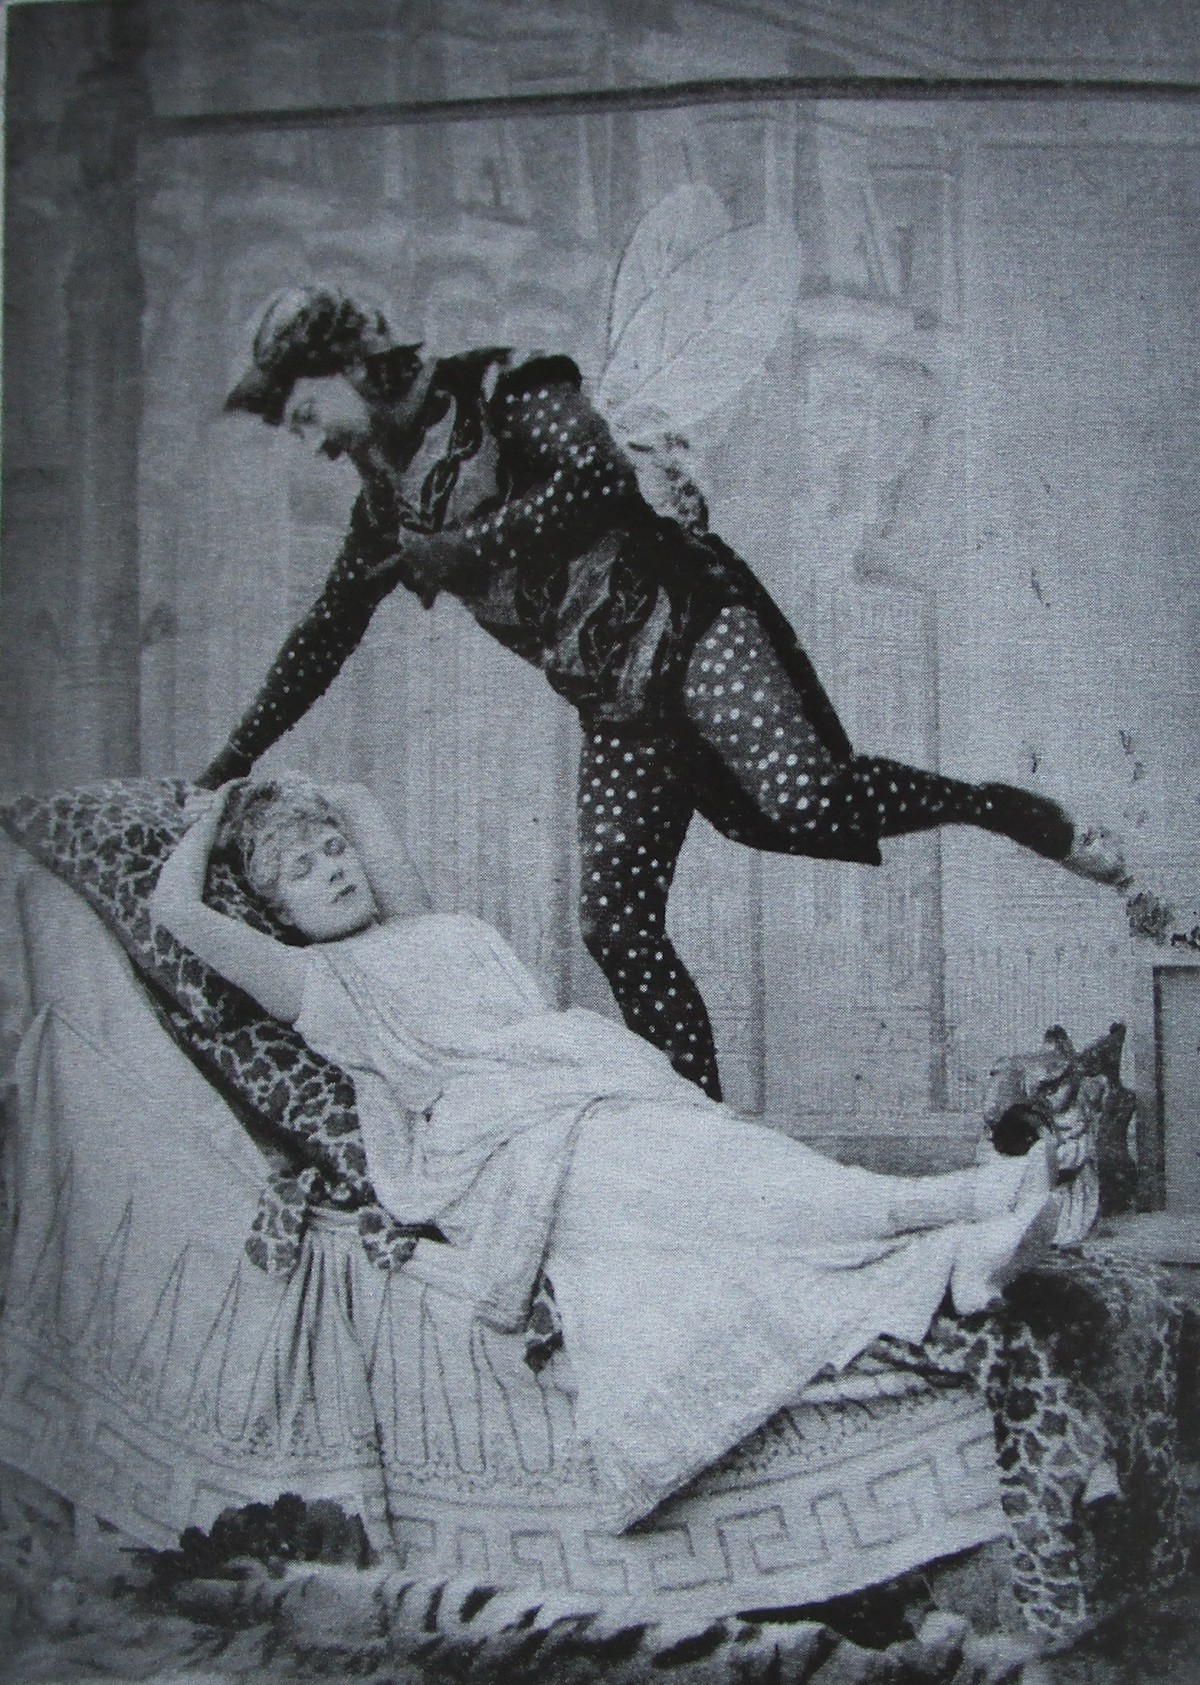 """Jeanne Granier as Eurydice and Eugène Vauthier as Jupiter in 1887, photo by Nadar from the collection of Laurent Fraison. (From """"...was Musik bewirken kann"""", Thelem Press 2016)"""